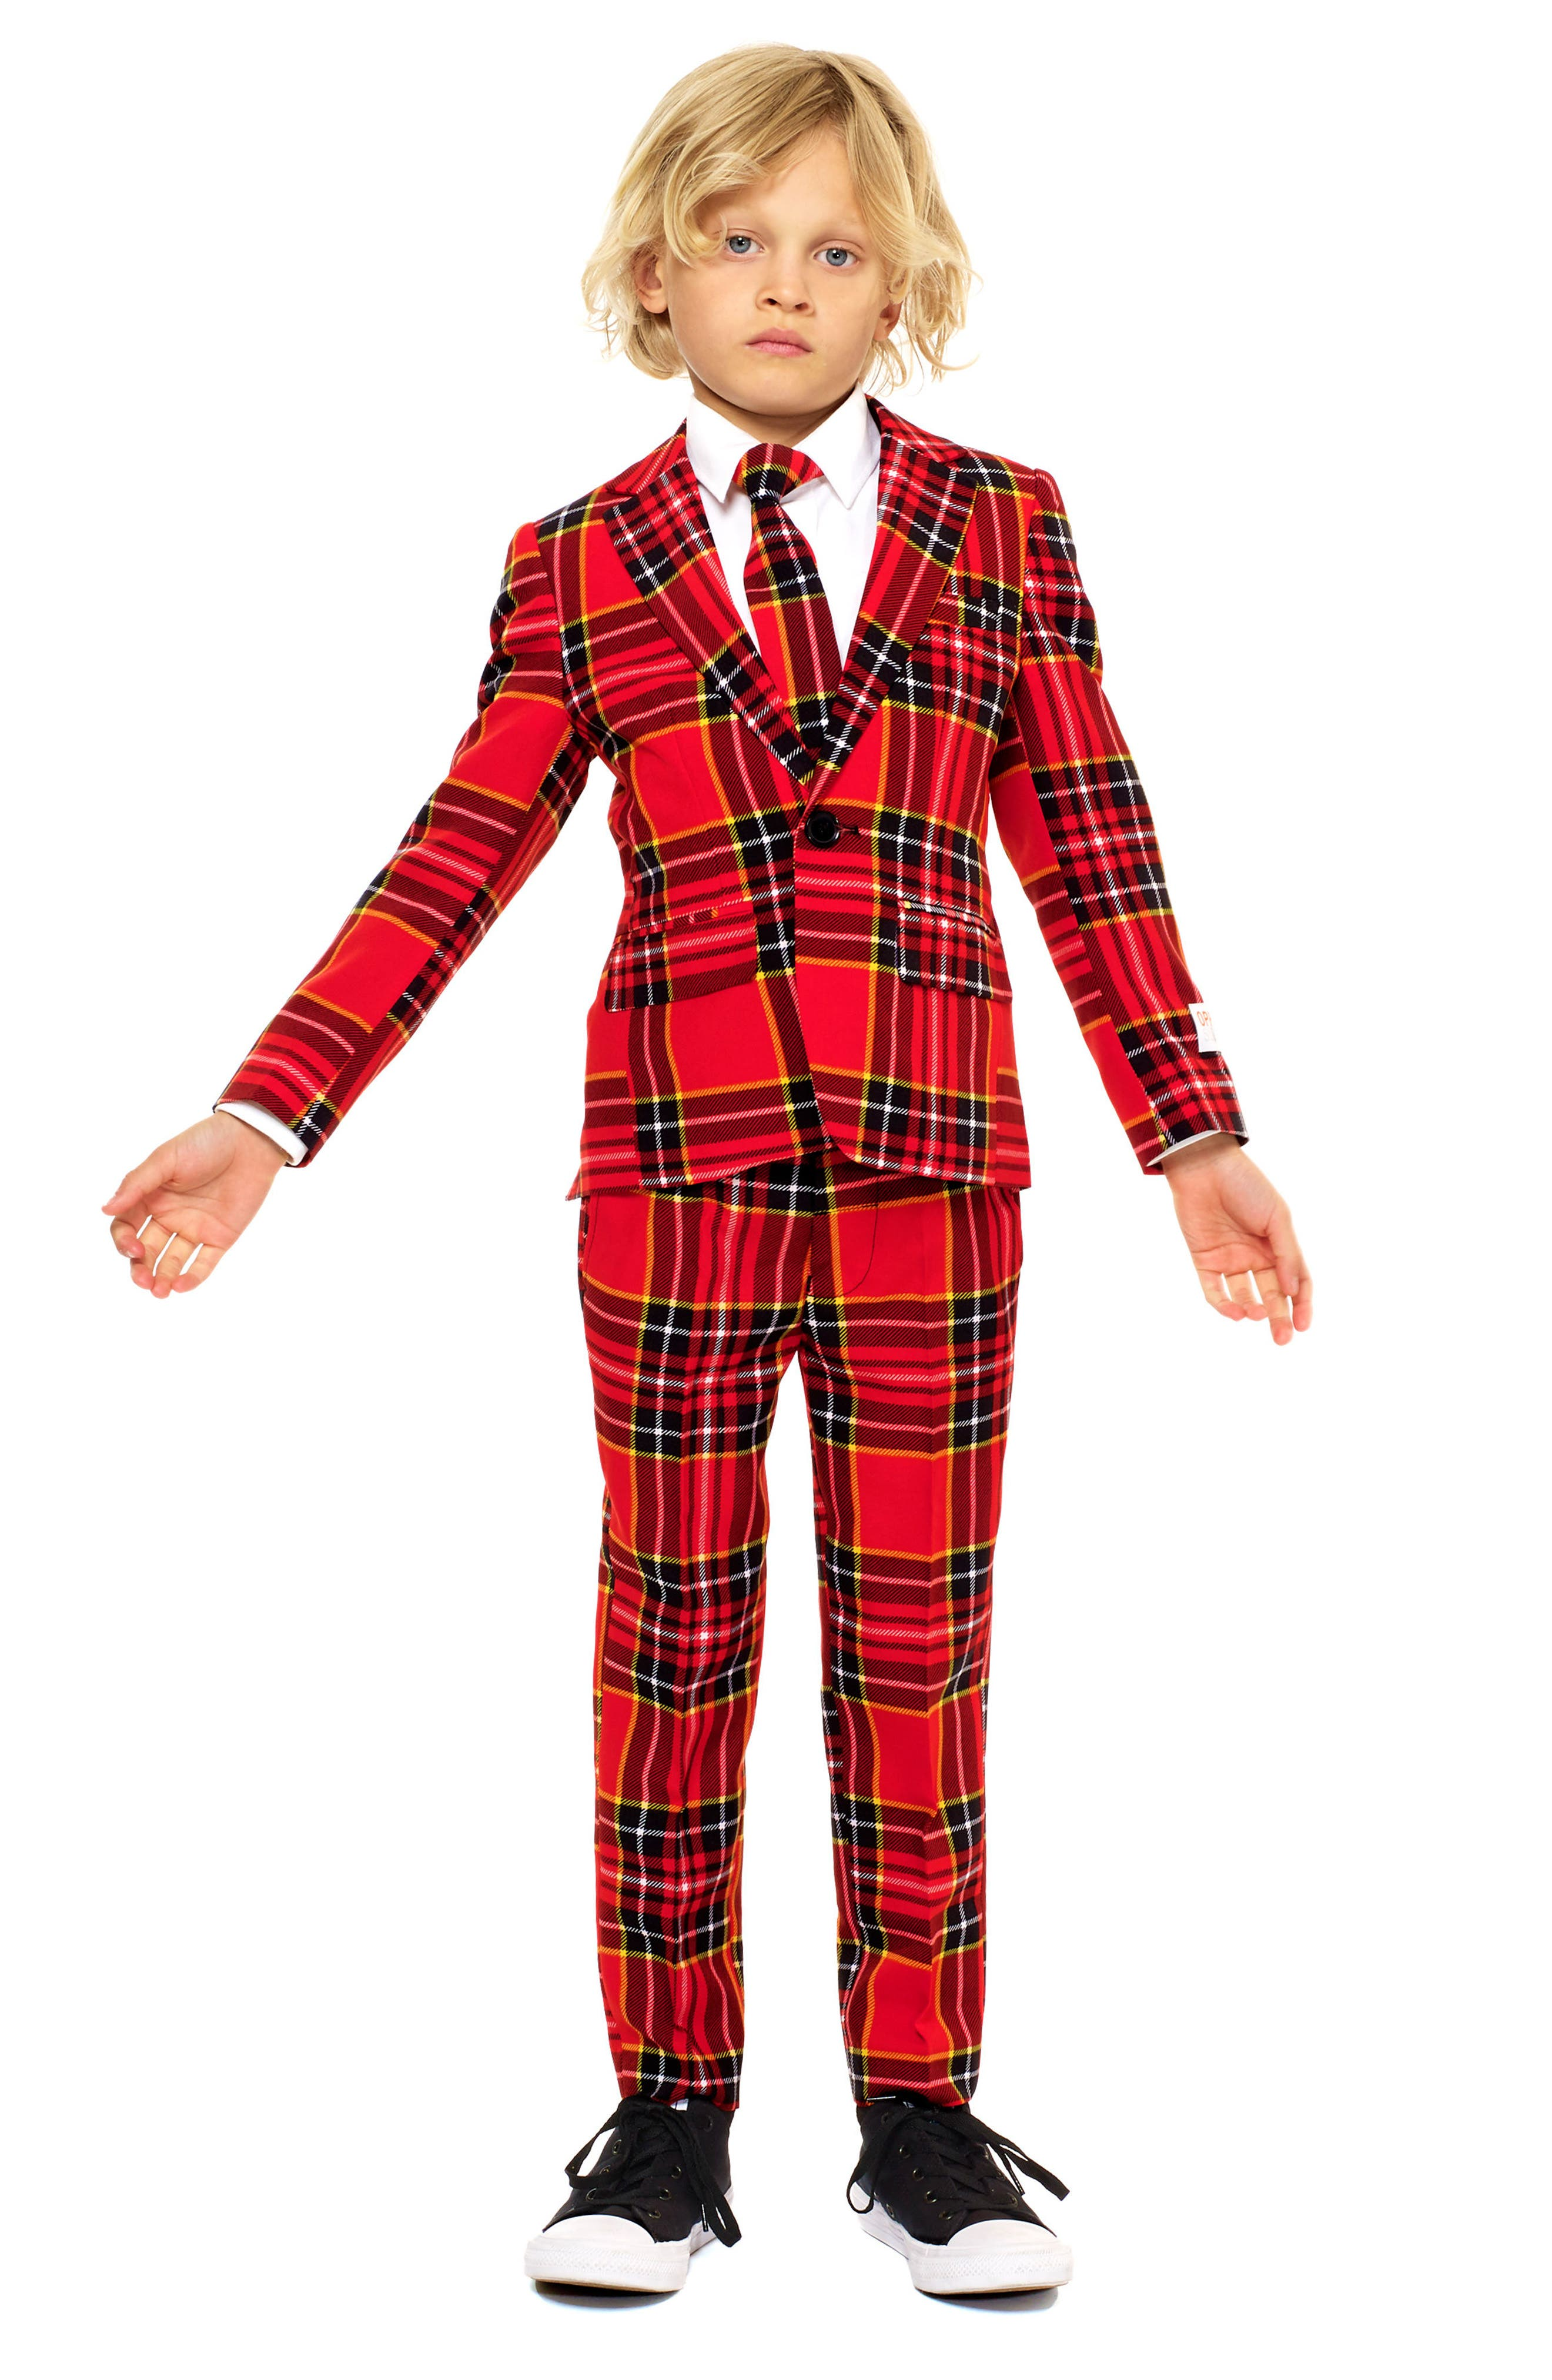 Toddler Boys Opposuits Lumberjack TwoPiece Suit With Tie